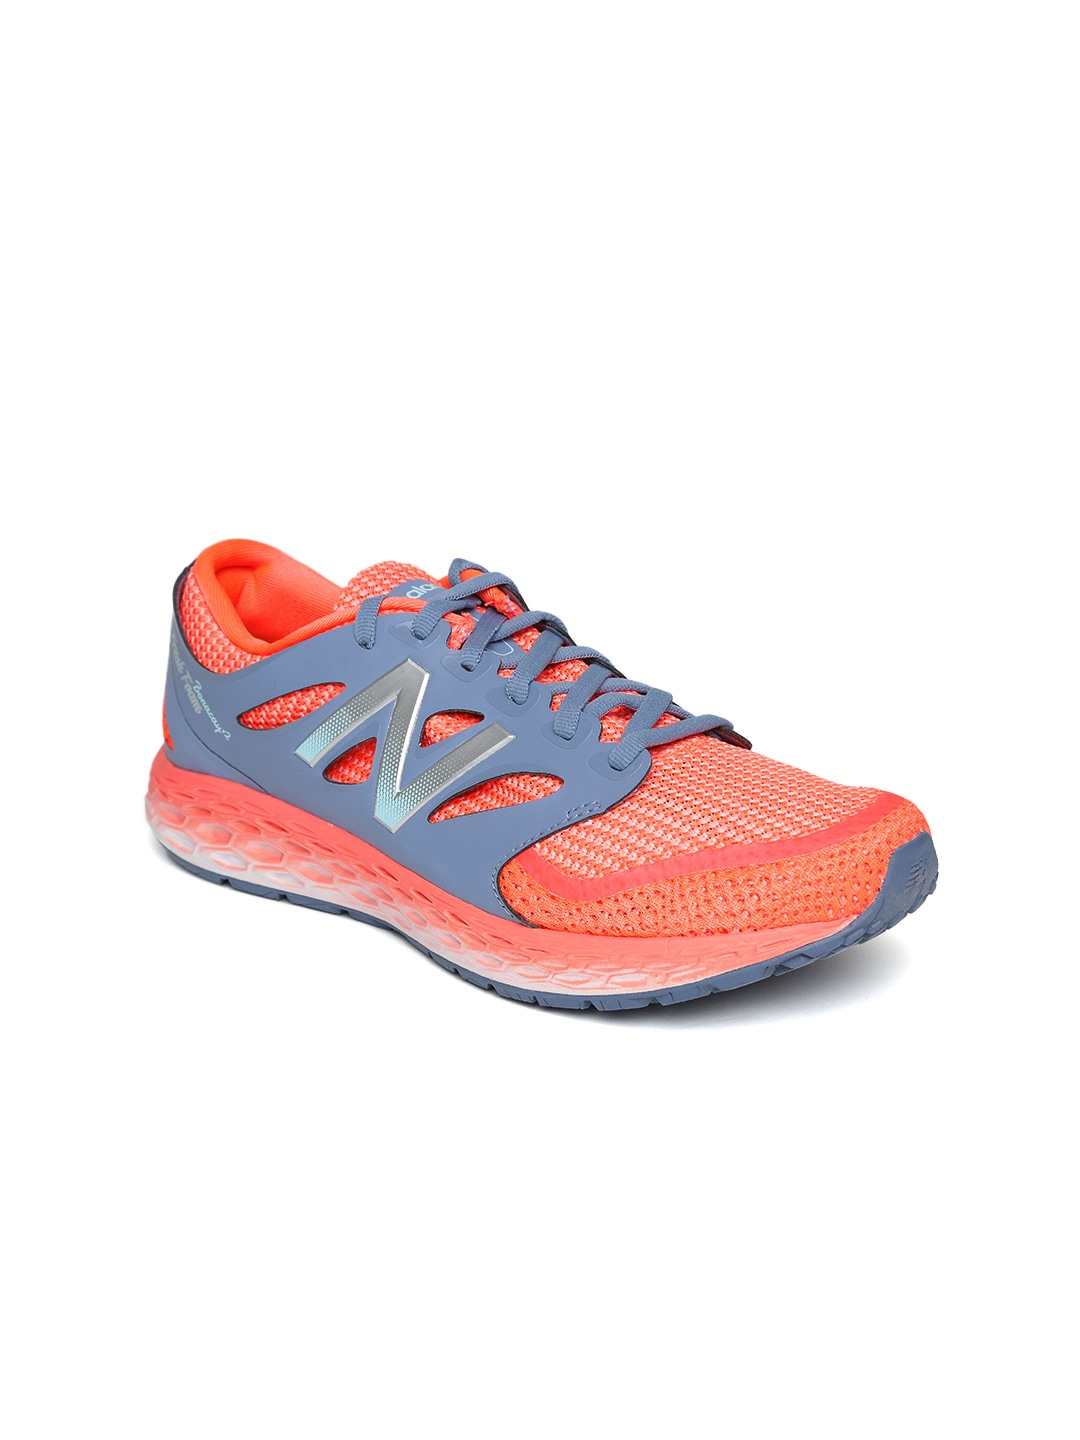 orange gray and white new balance sneakers womens new balance cross trainer shoes